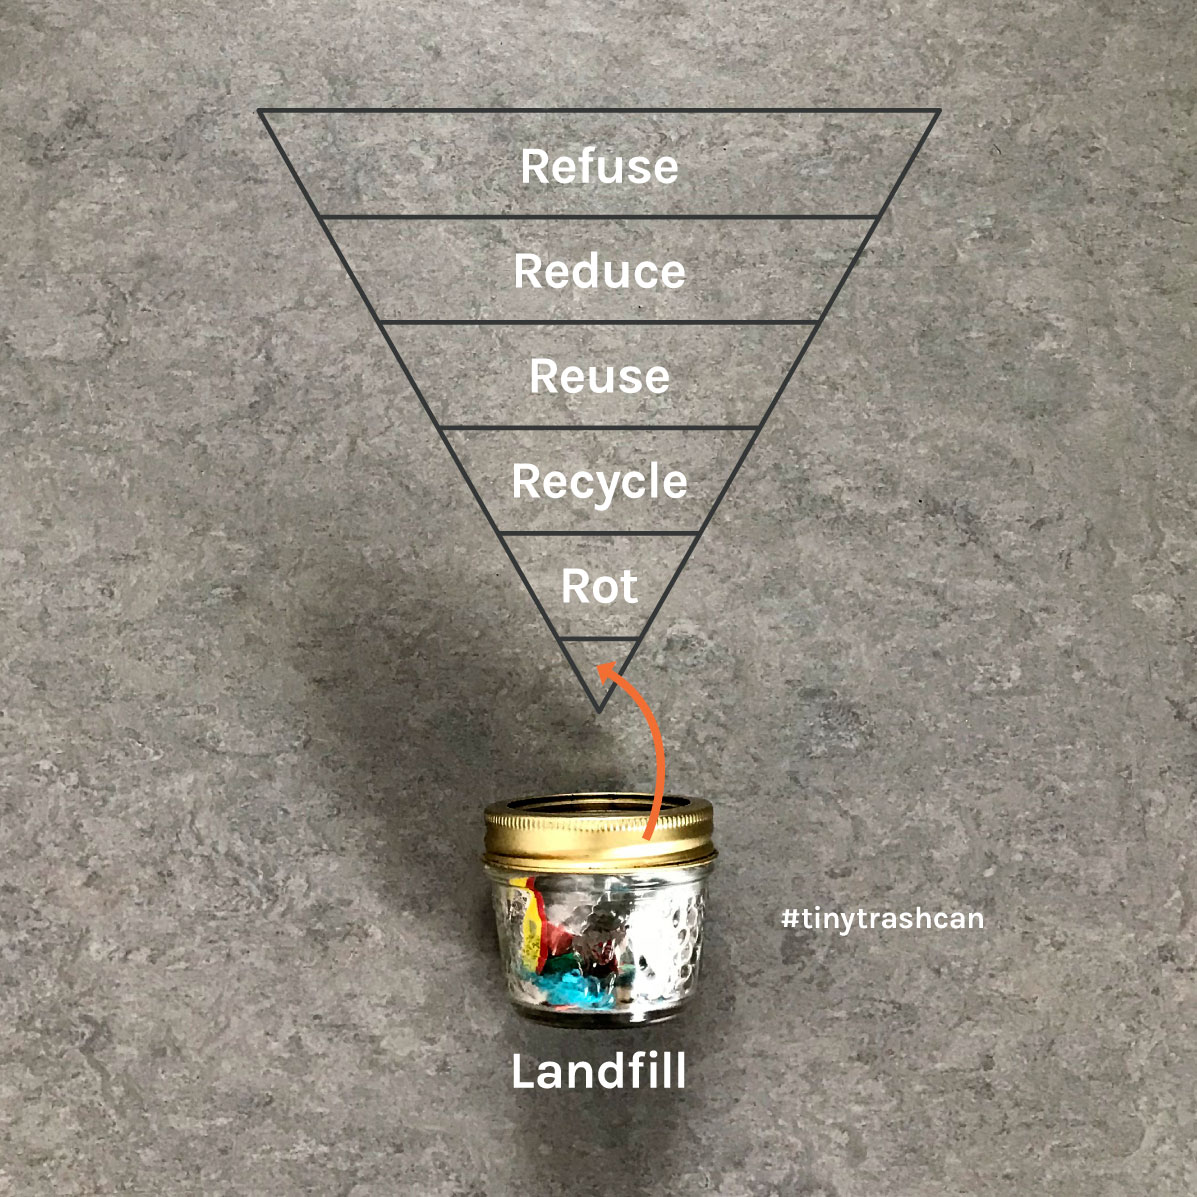 Tiny Trash Can zero waste definition 5Rs